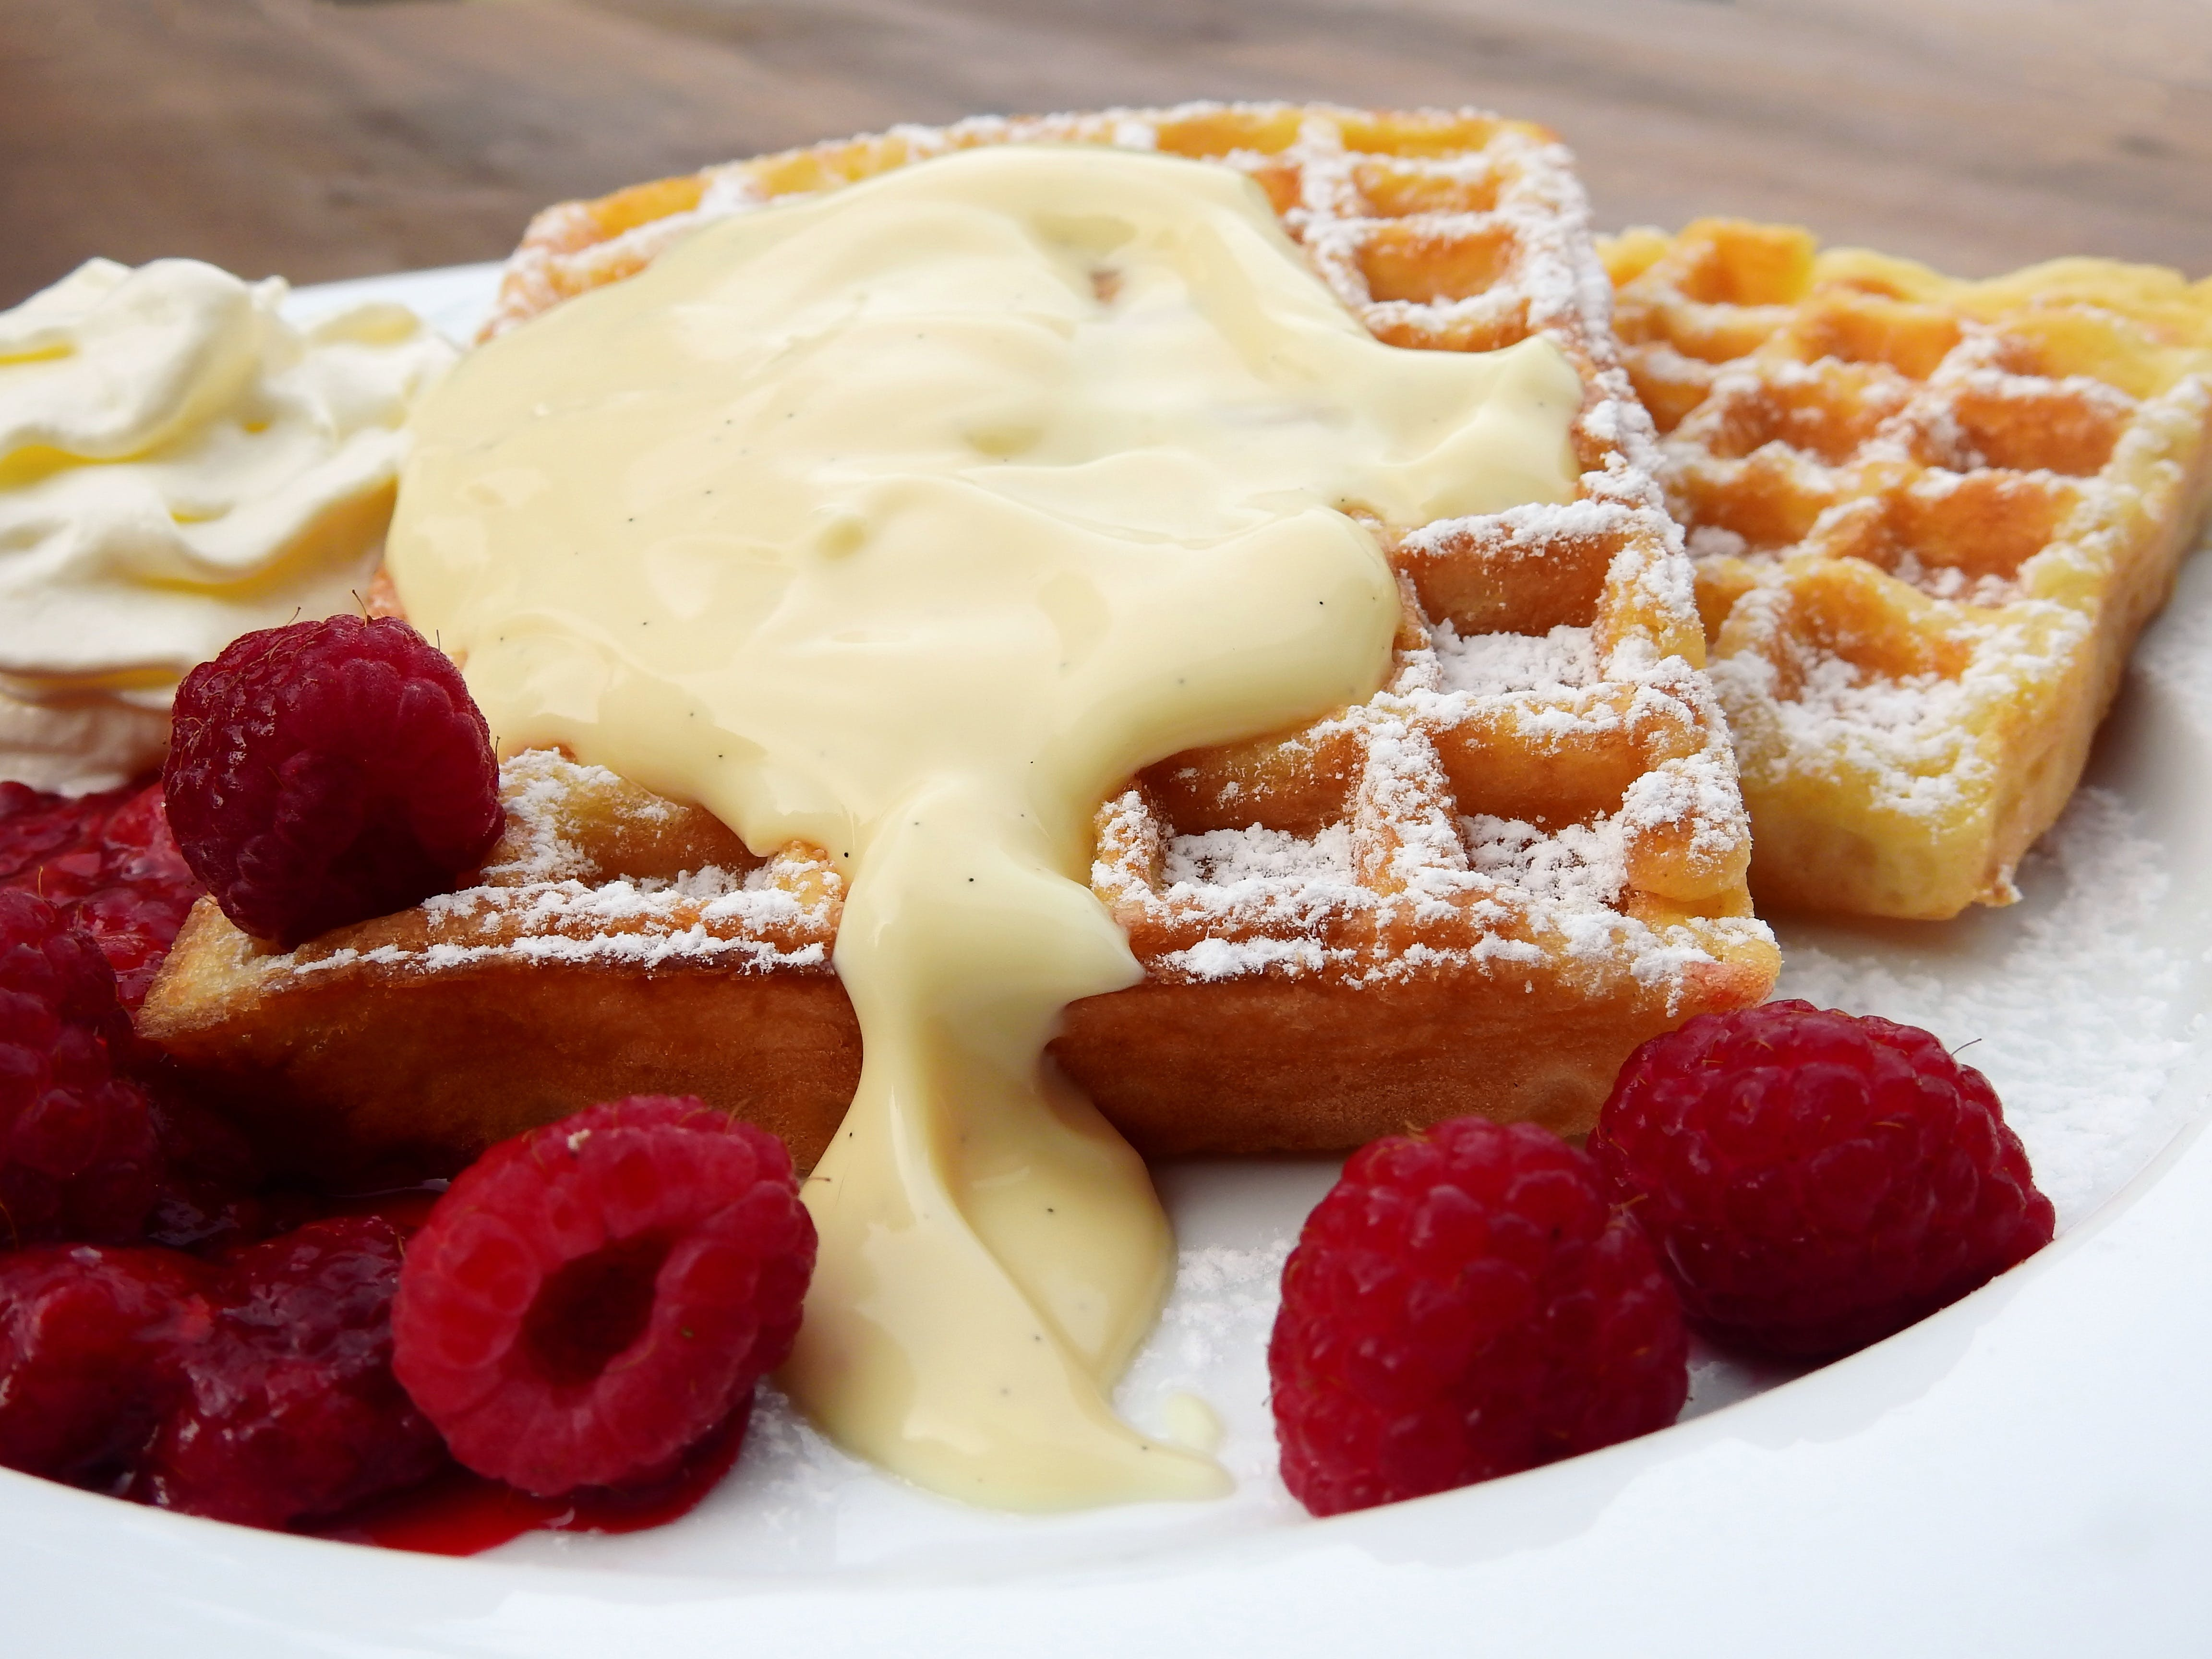 Plate of Waffles and Raspberries